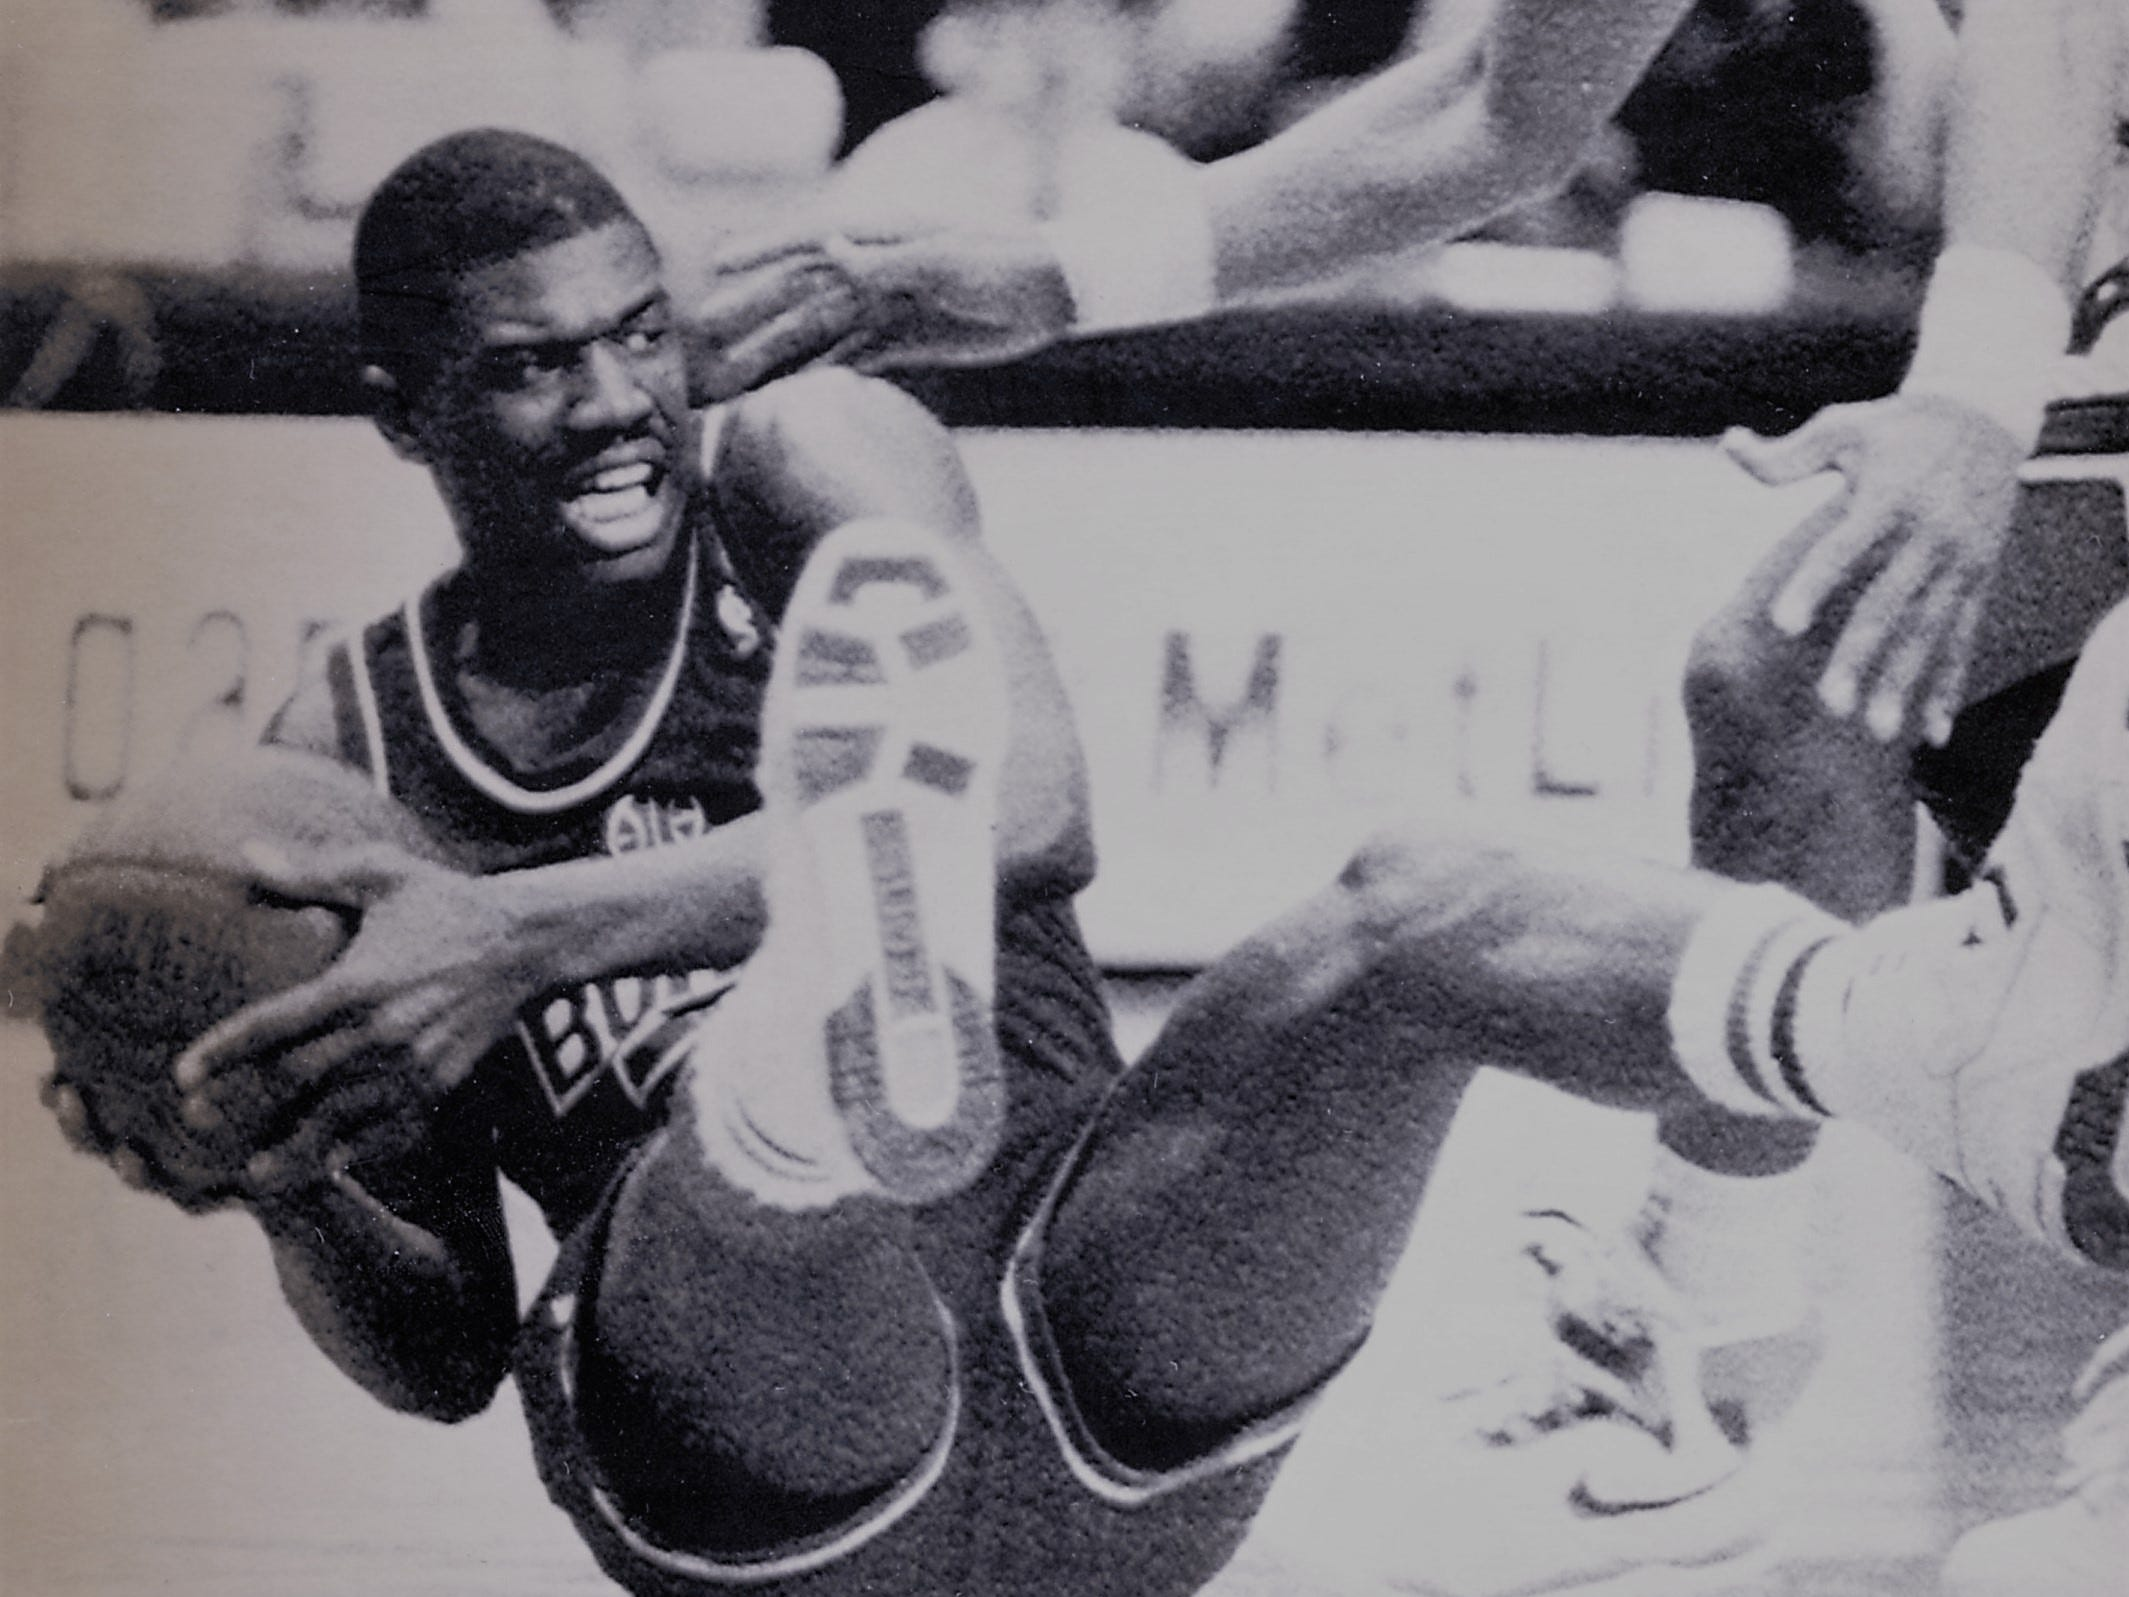 Bernard King with the Washington Bullets, January, 1990.